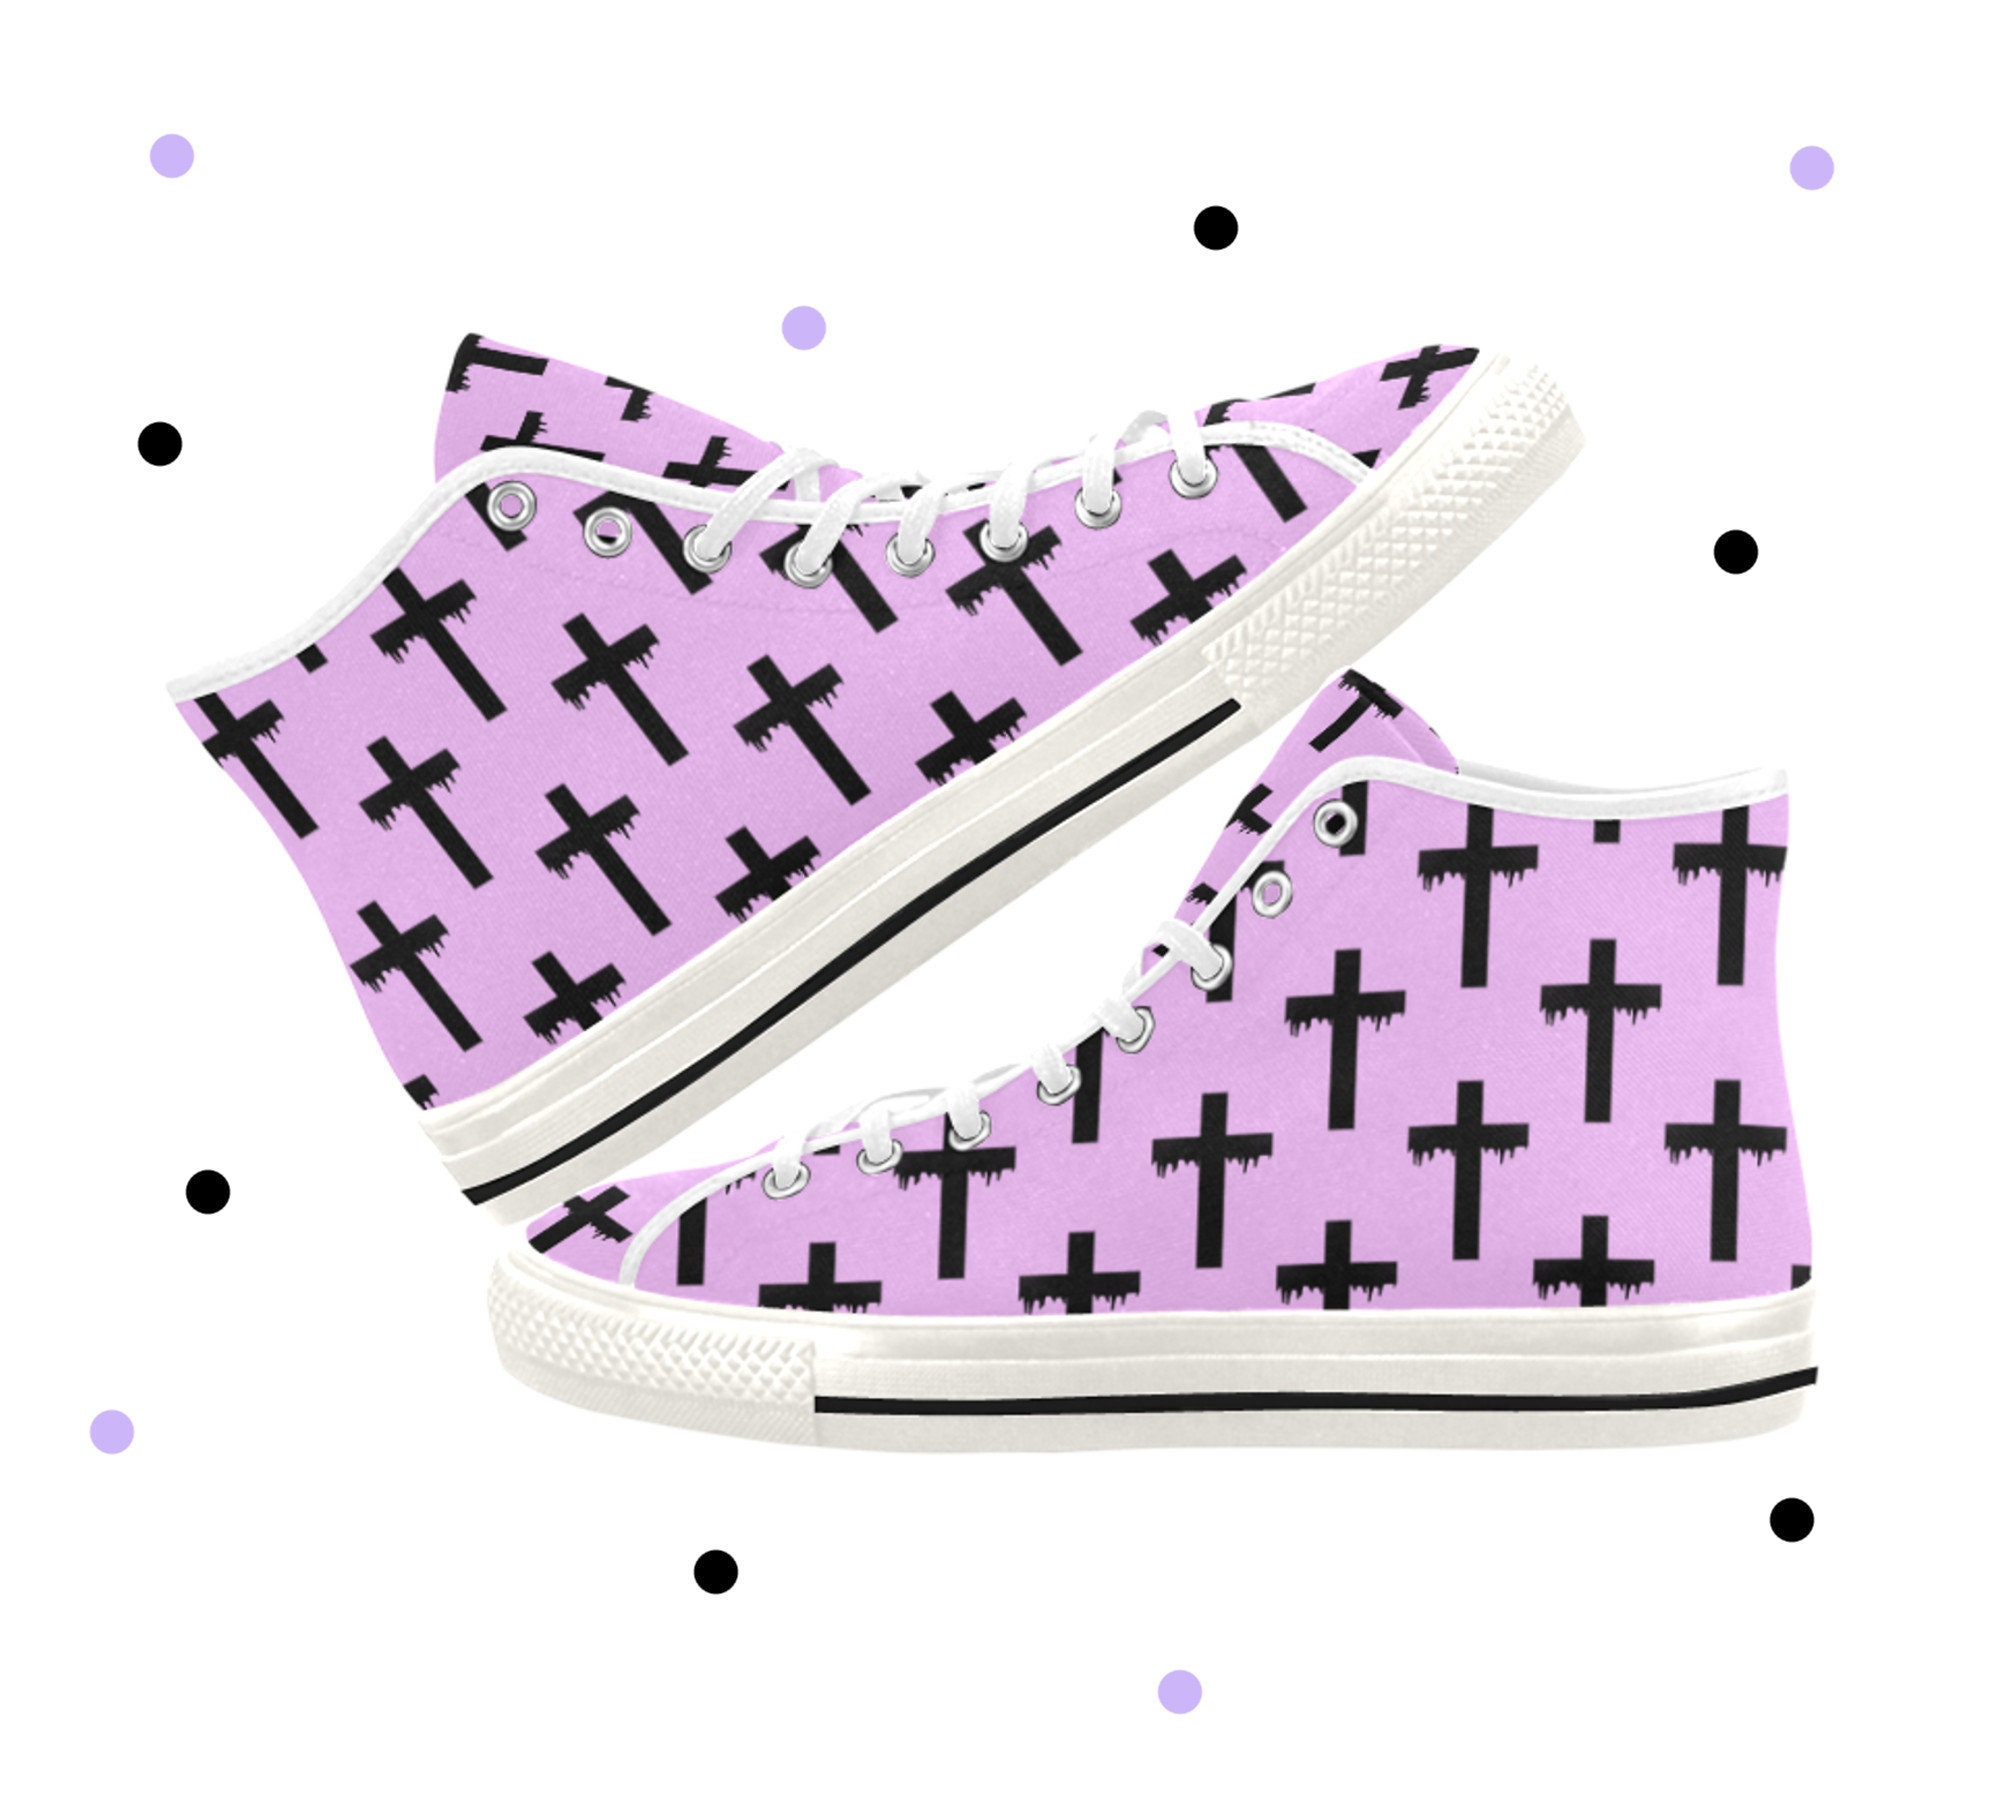 6951d88d3cb97 Pastel goth - Creepy cute - Pastel goth Sneakers - Nu goth - Occult -  Lace-up canvas shoes